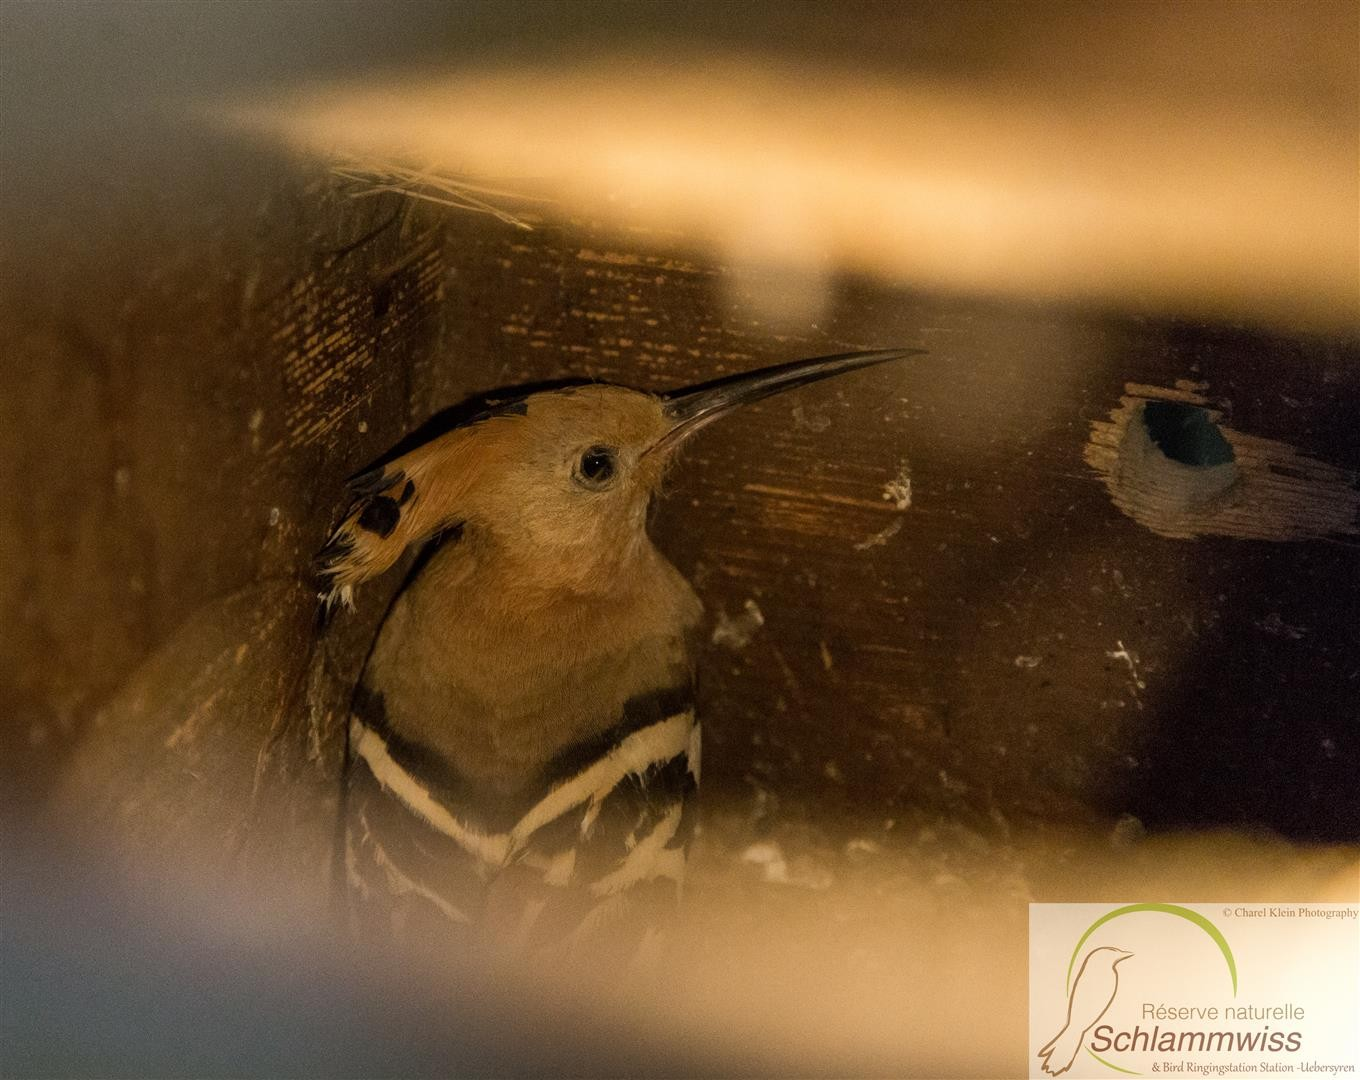 female hoopoe in the woodbox (no flash)